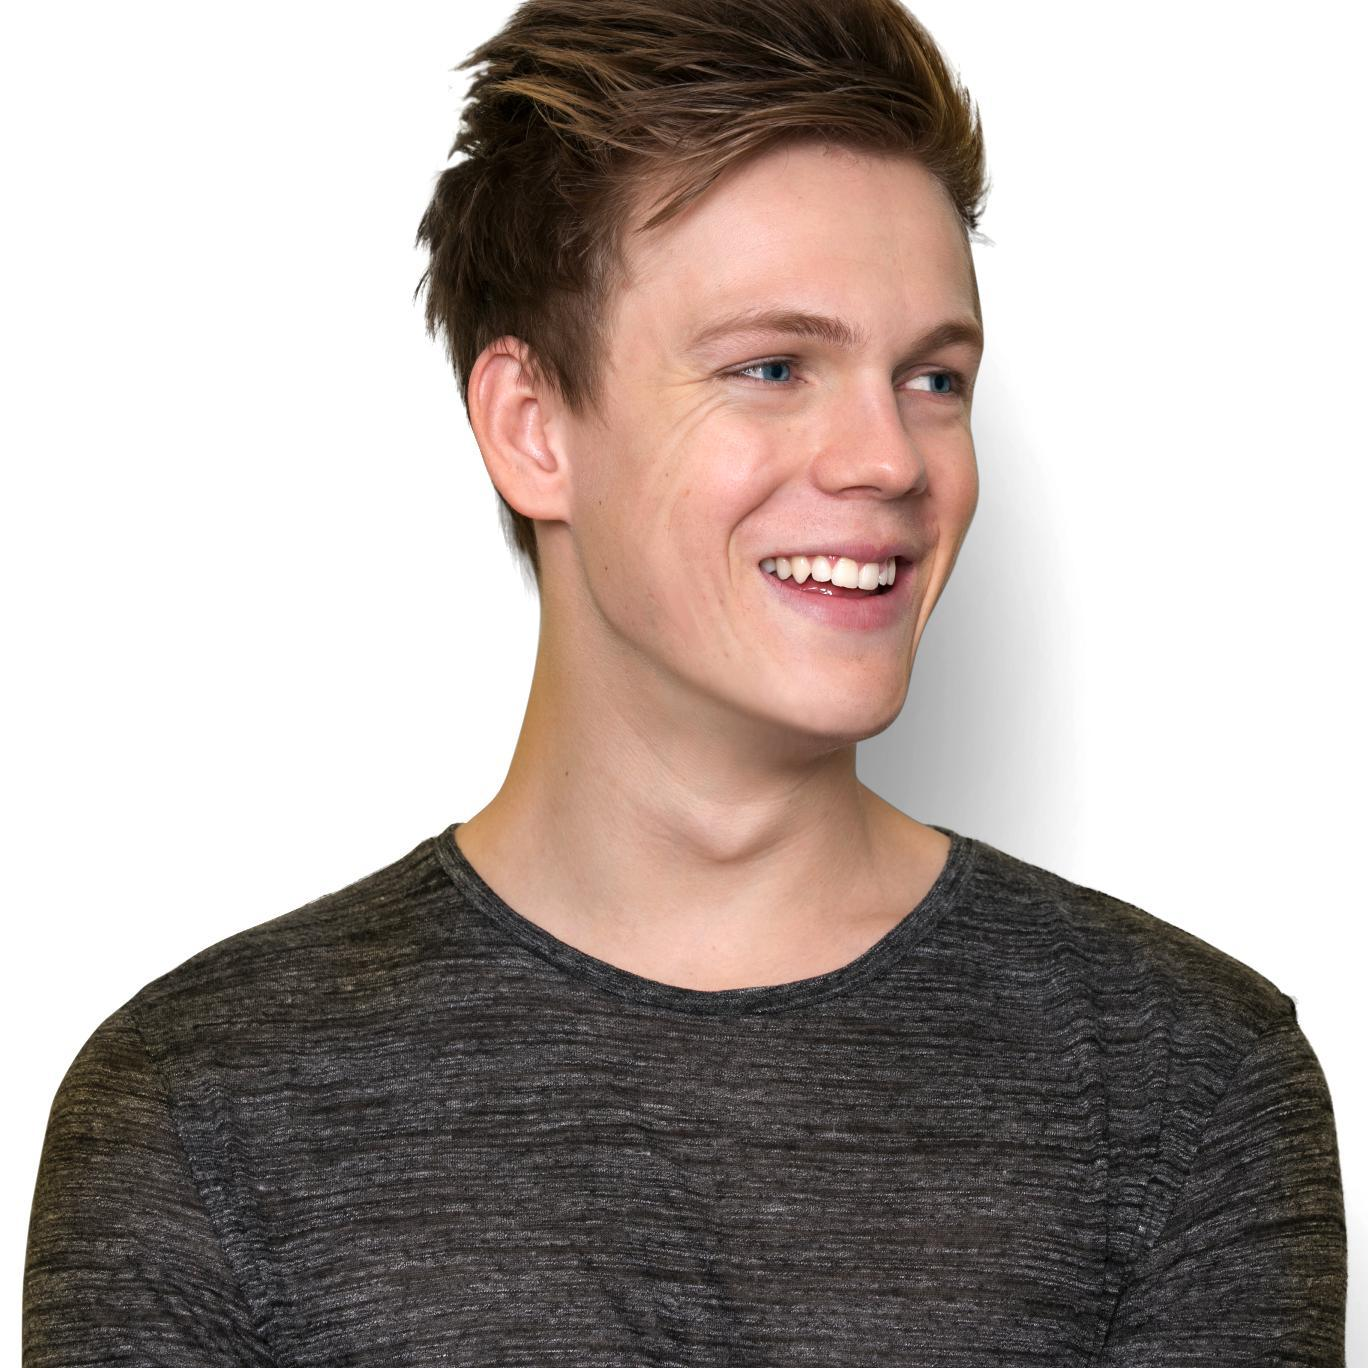 Web Video Star Caspar Lee - age: 26